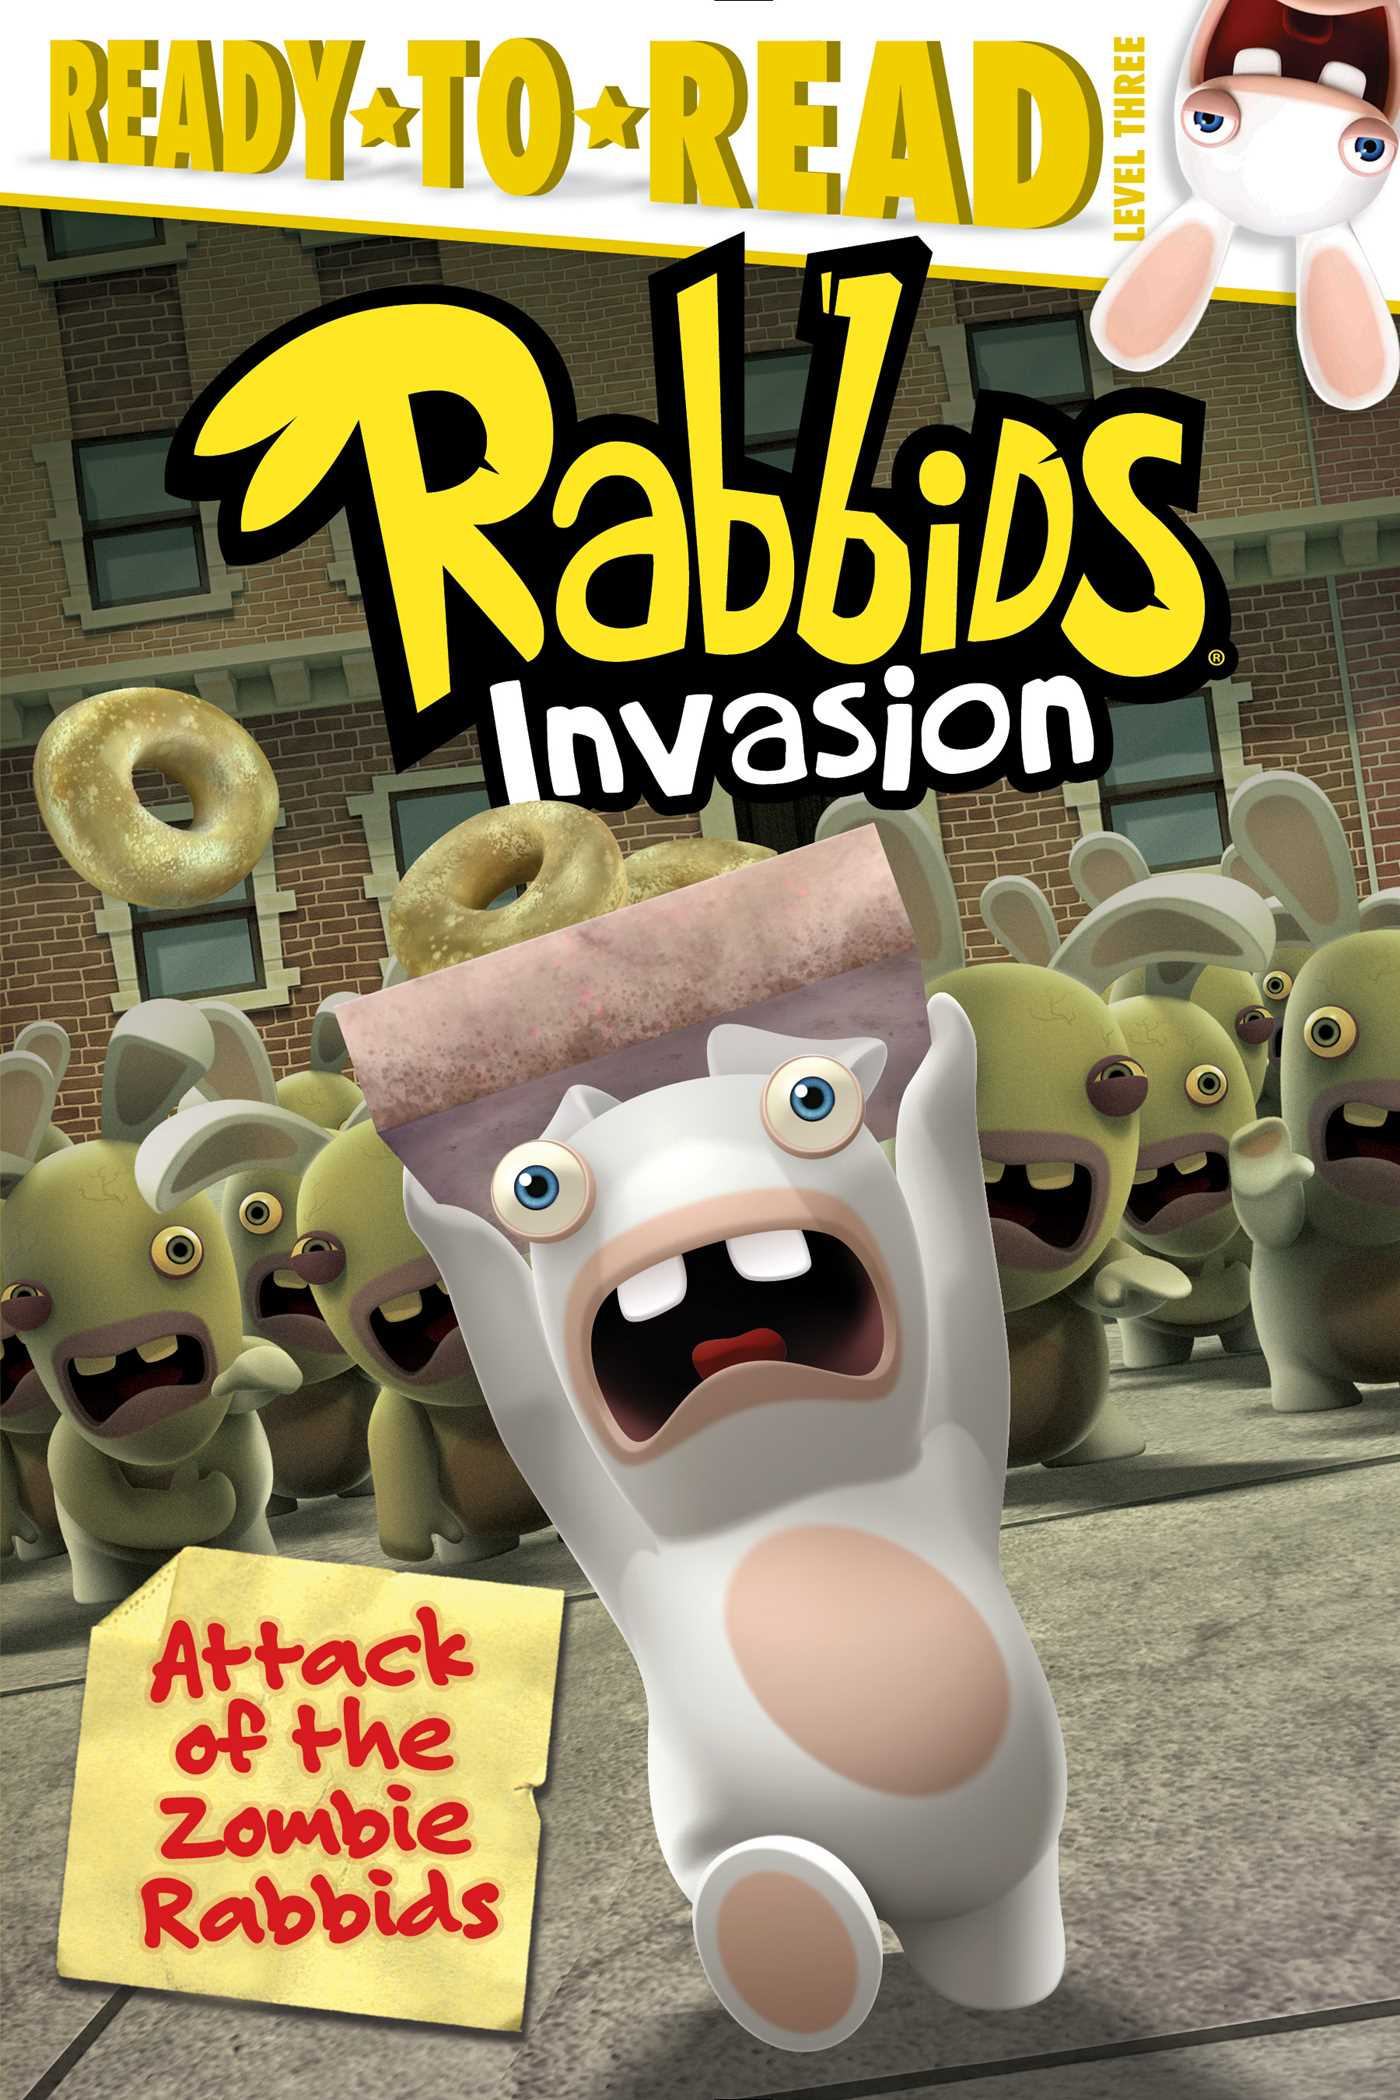 Attack of the zombie rabbids 9781481460668 hr